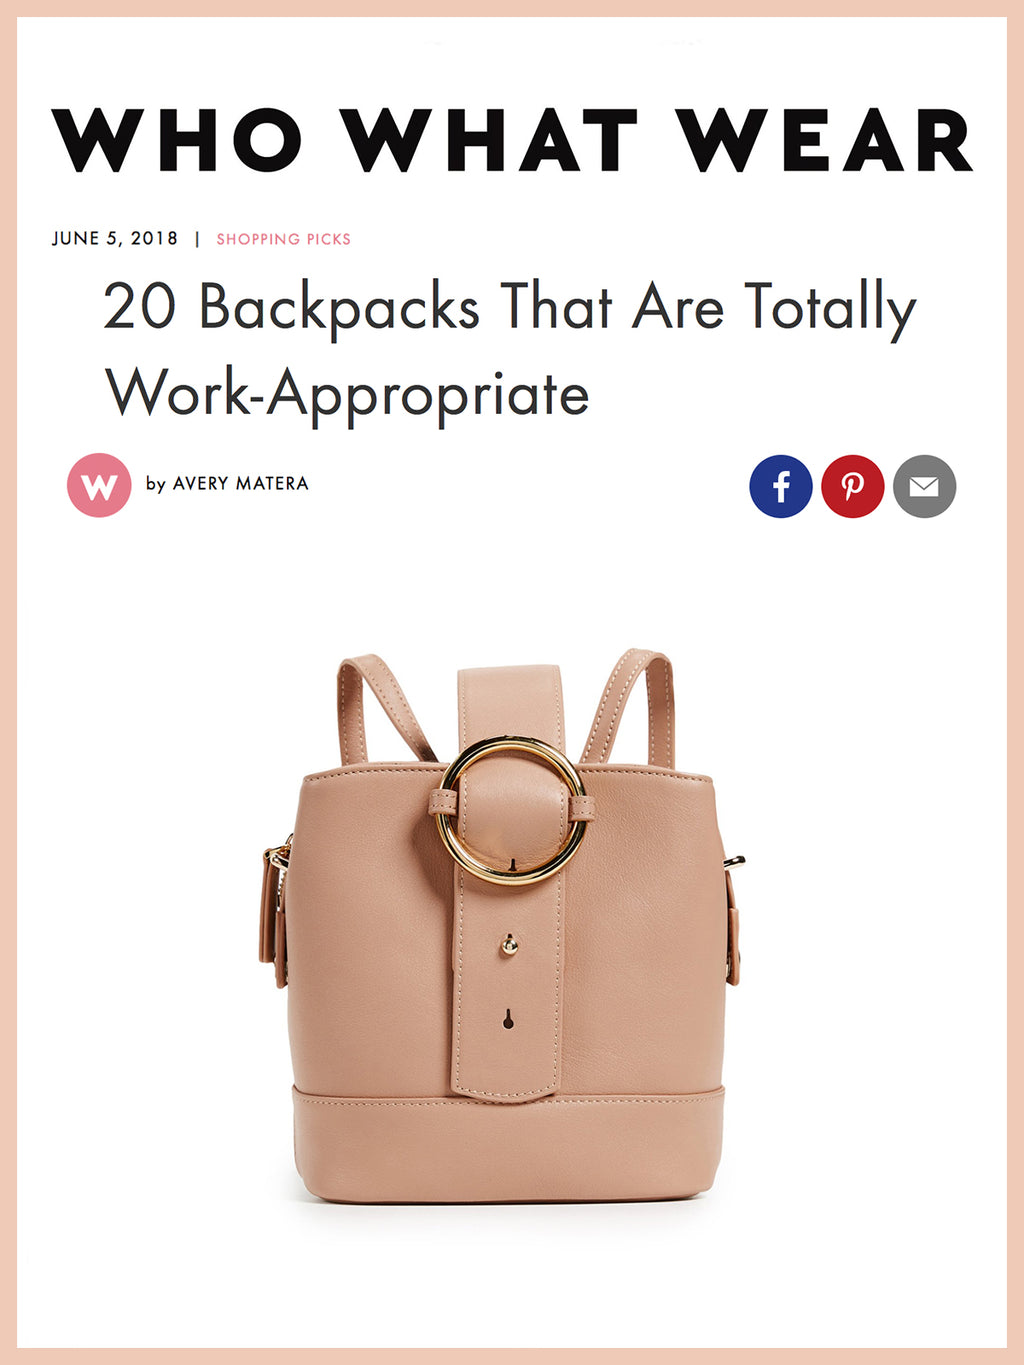 WHO WHAT WEAR, 20 Backpacks That Are Totally Work-Appropriate